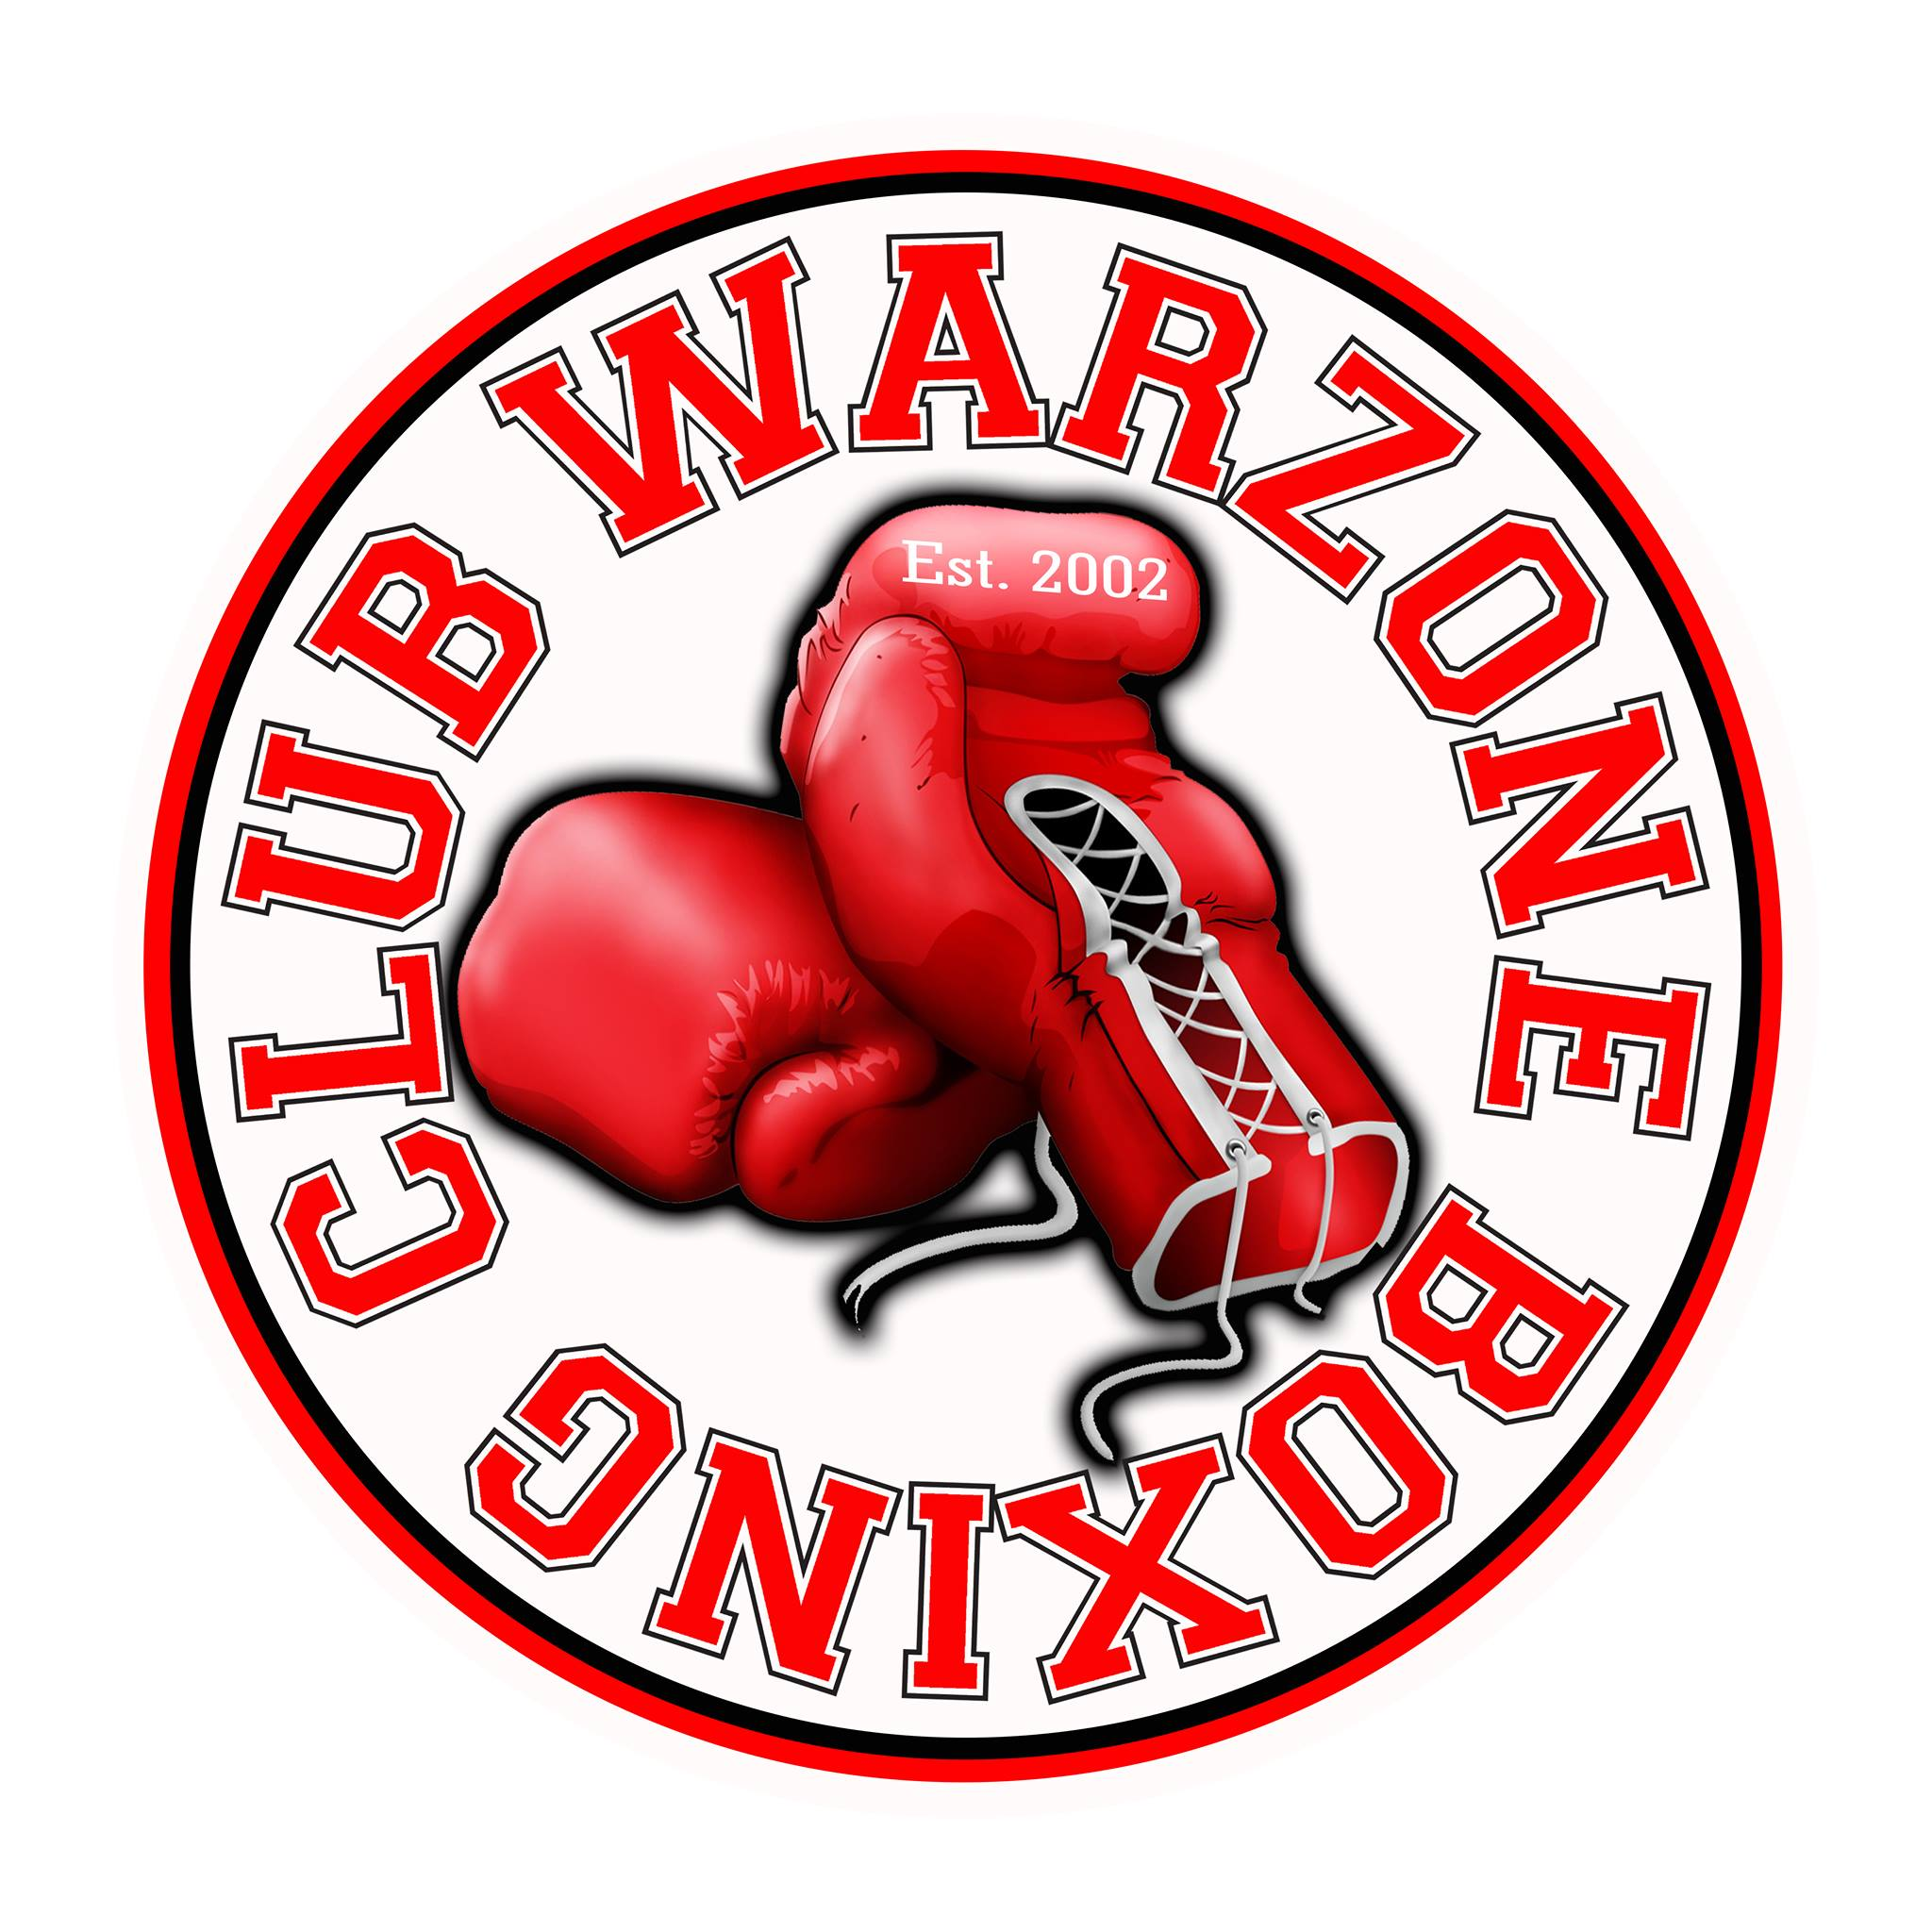 WARZONE BOXING CLUB 1